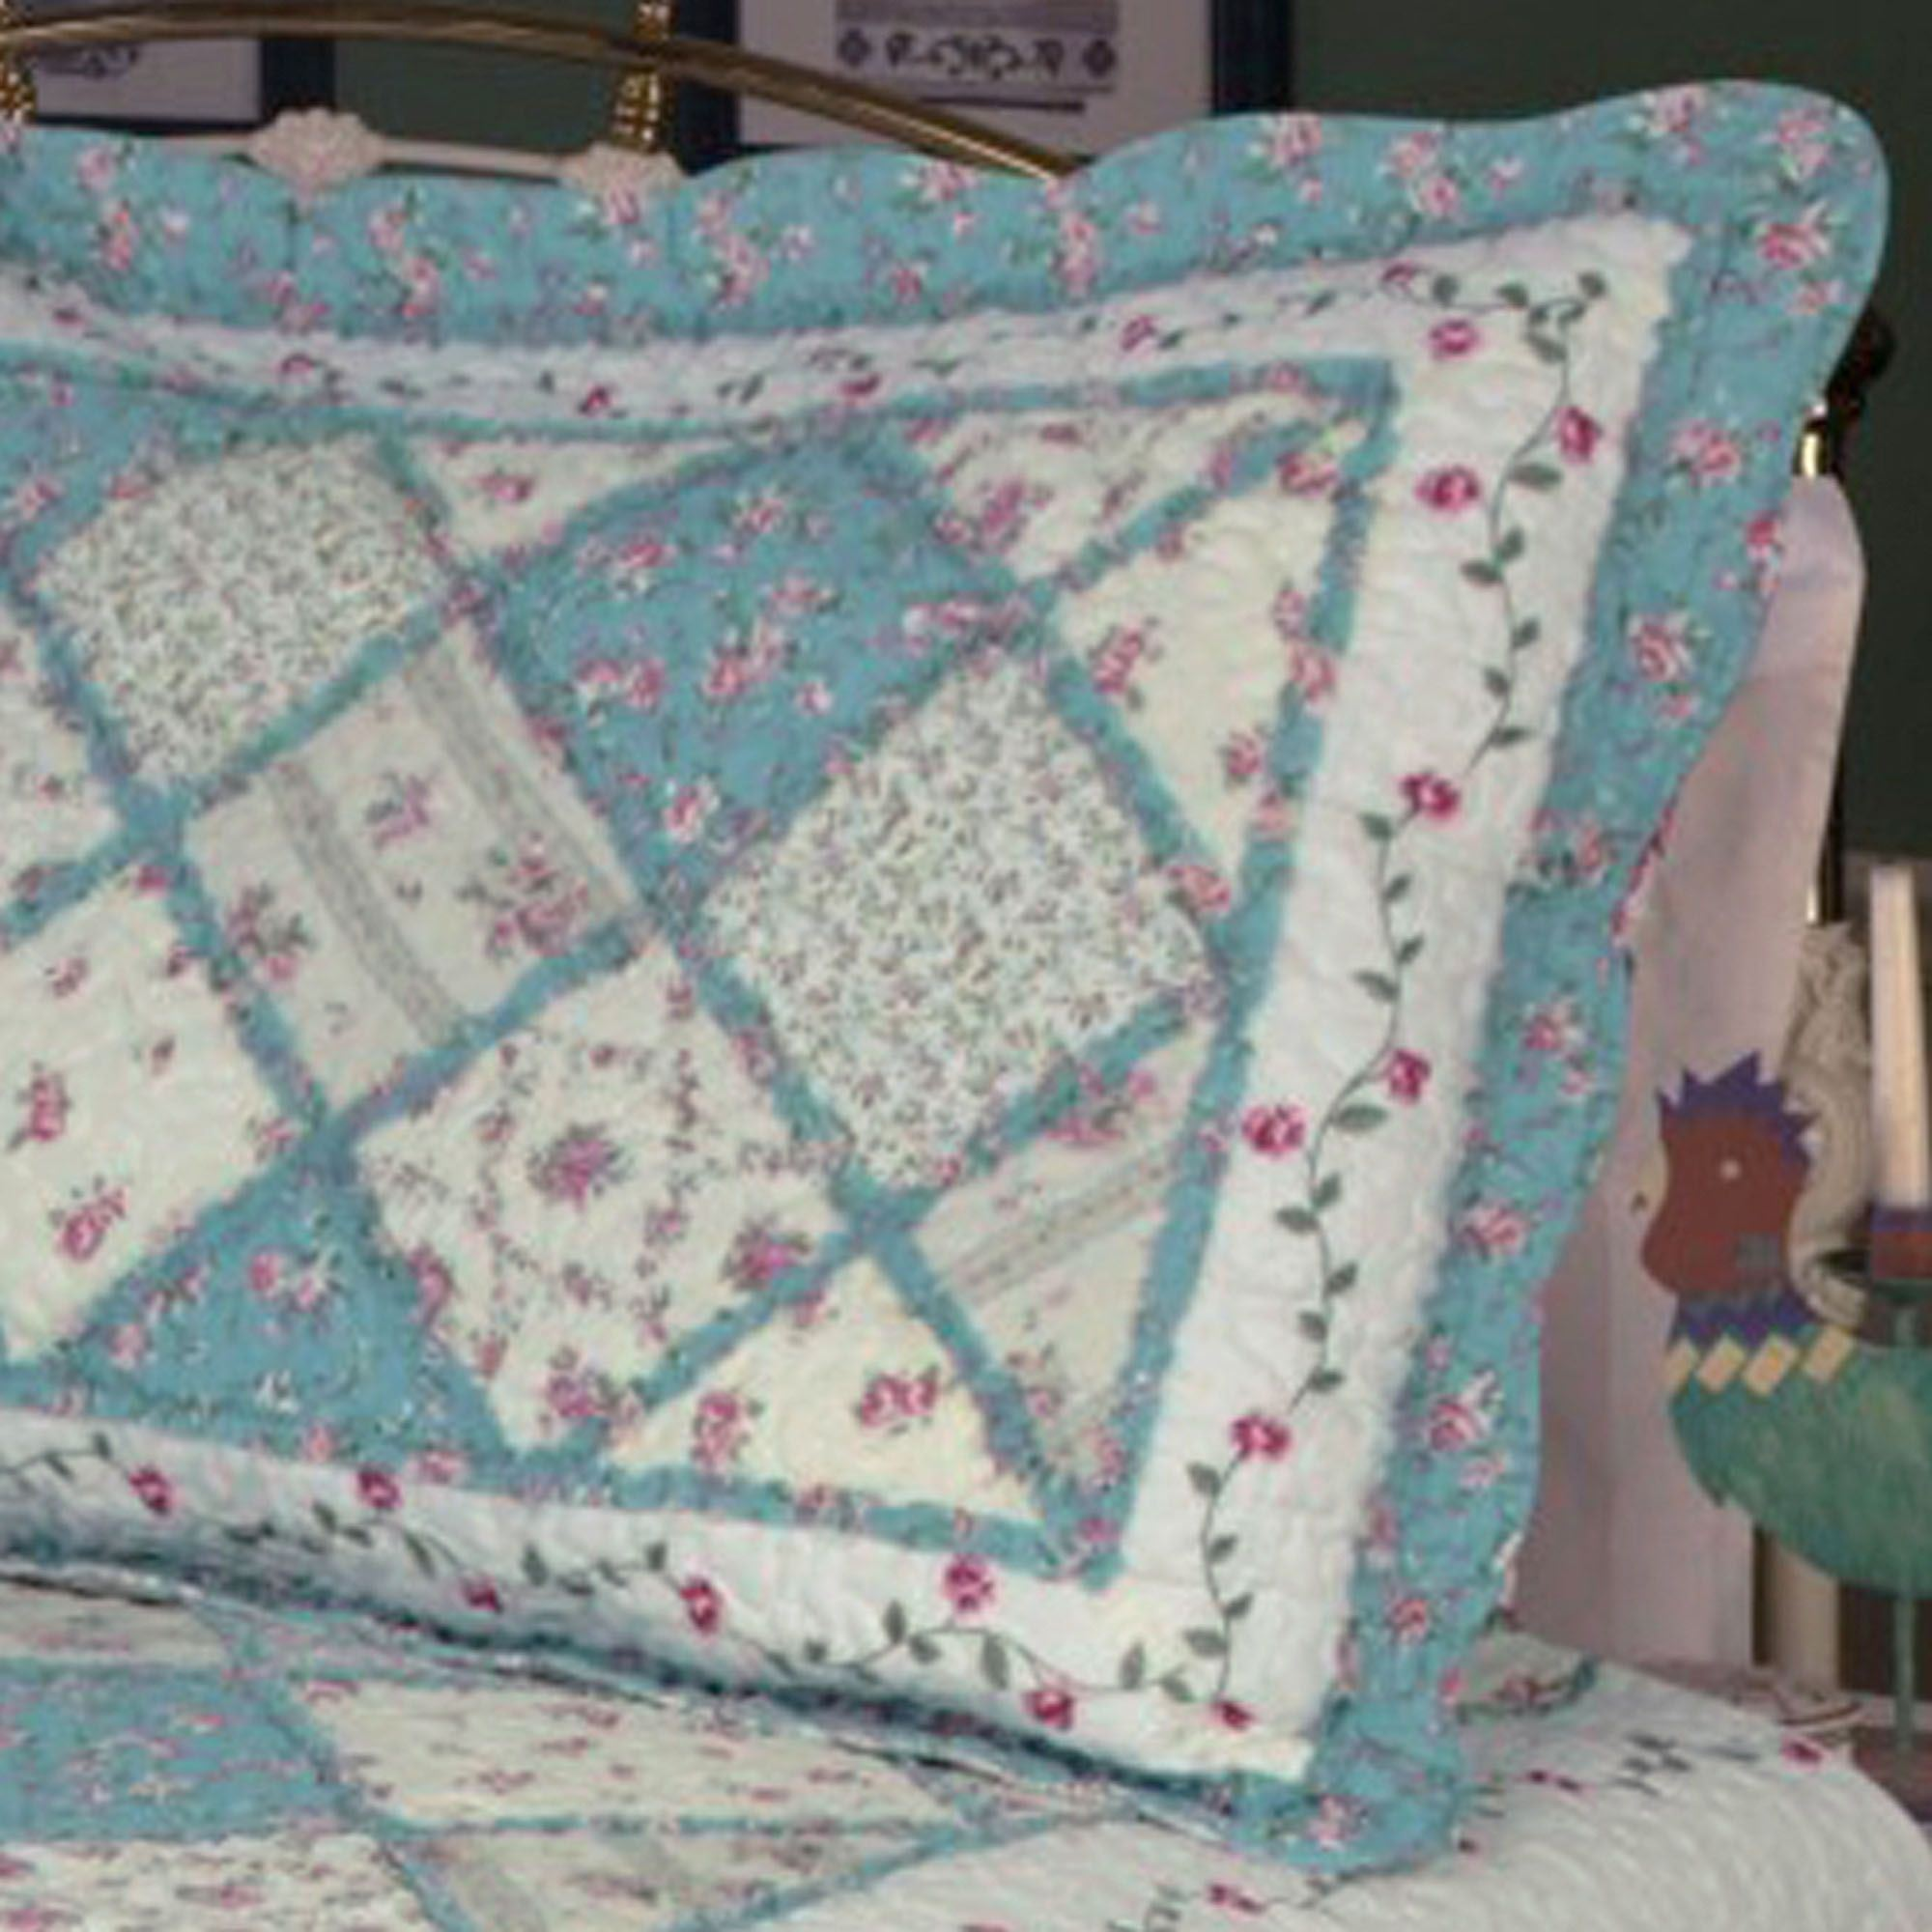 cotton queen dada quilt real set turquoise bedding home dp bedspread fairy print com forest kitchen glade patchwork floral amazon pieces